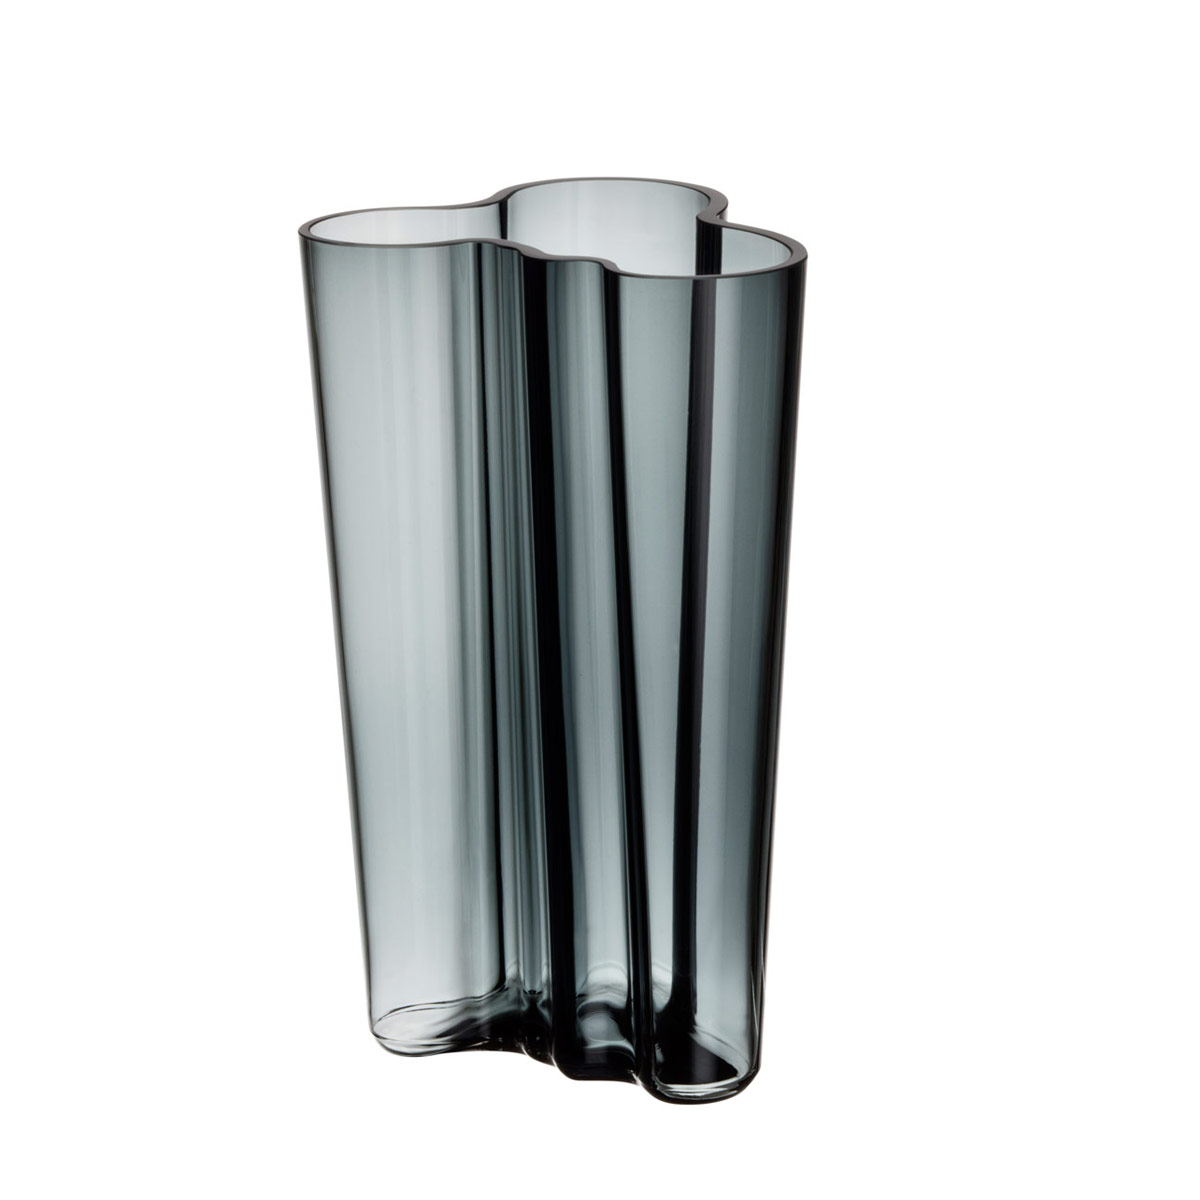 iittala aalto finlandia dark grey vase 8 iittala. Black Bedroom Furniture Sets. Home Design Ideas